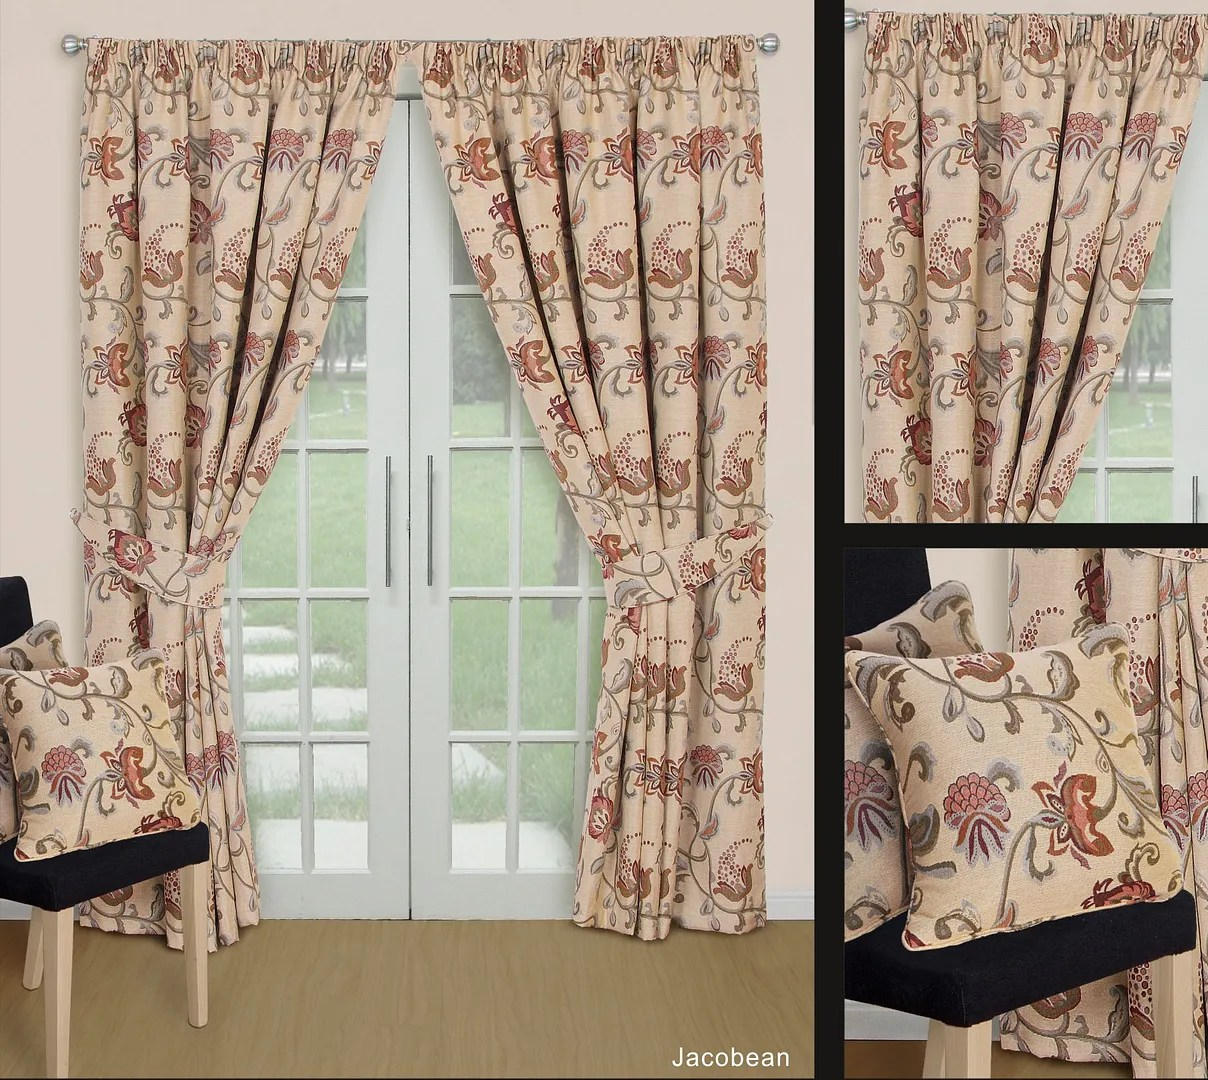 Jacquard Curtains Details About Vintage Jacobean Thick Heavy Lined Natural Tapestry Jacquard Curtains Ties